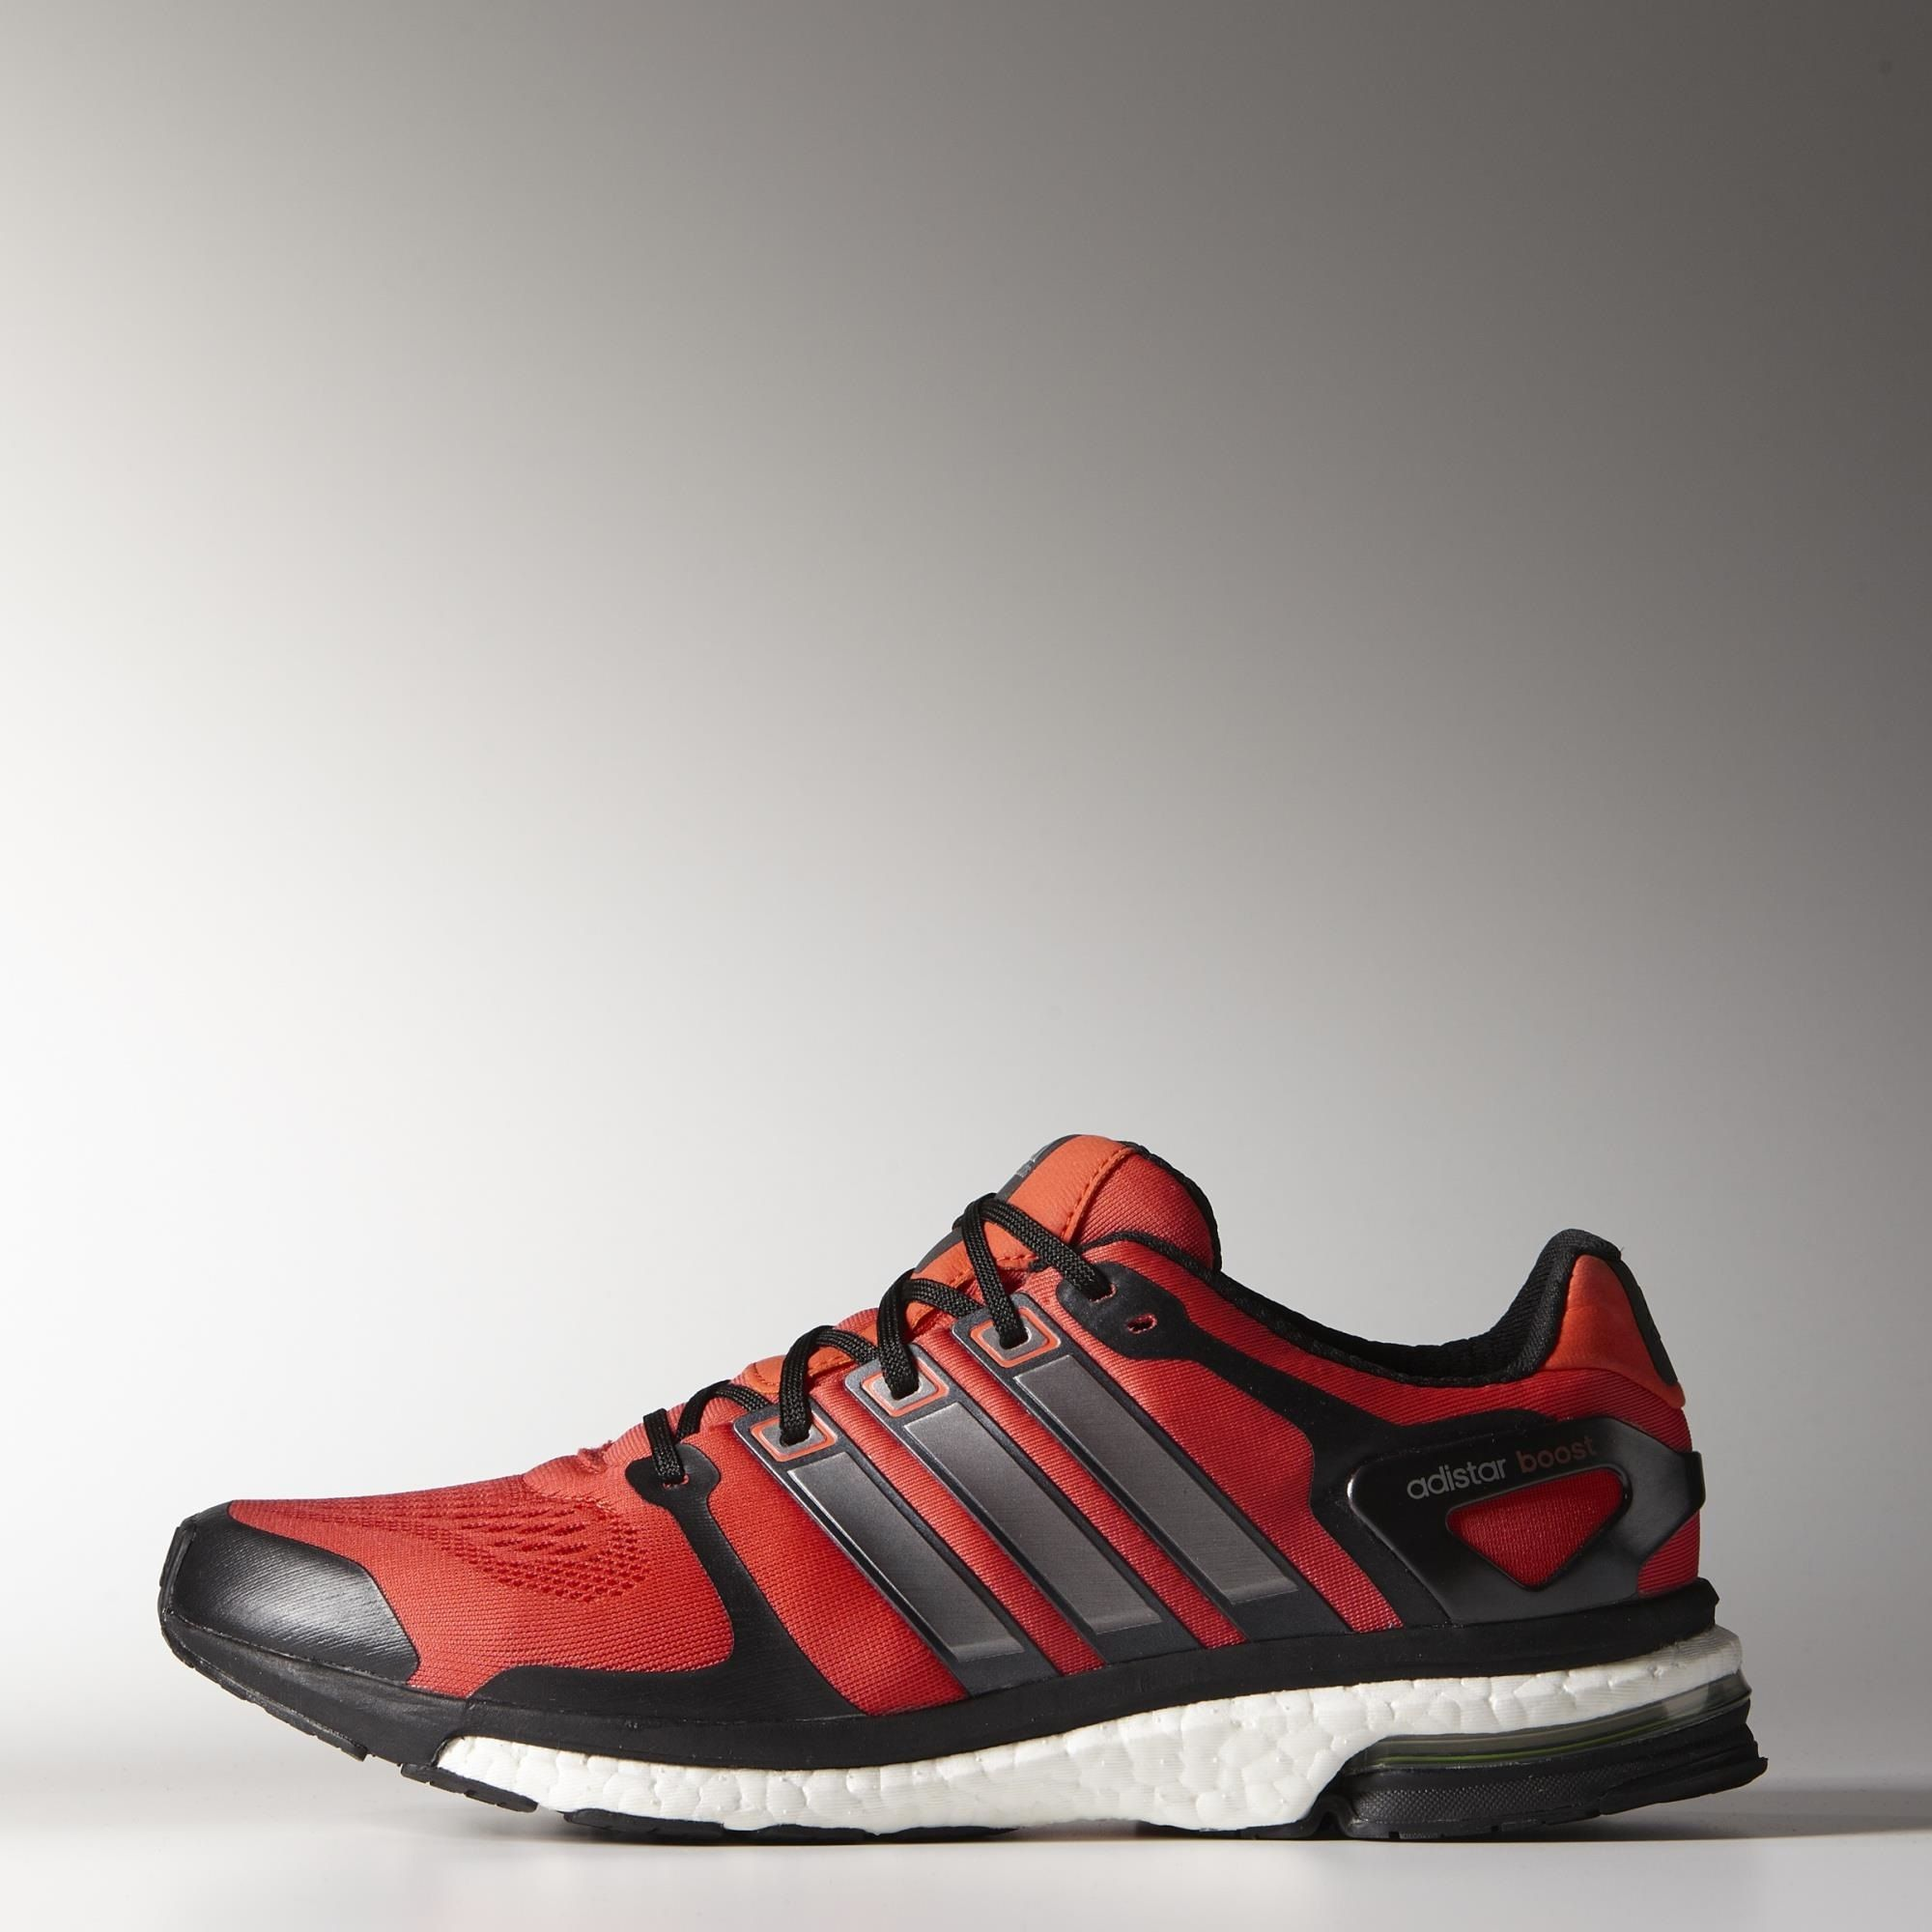 Kicks of the Day: adidas Energy Boost ESM